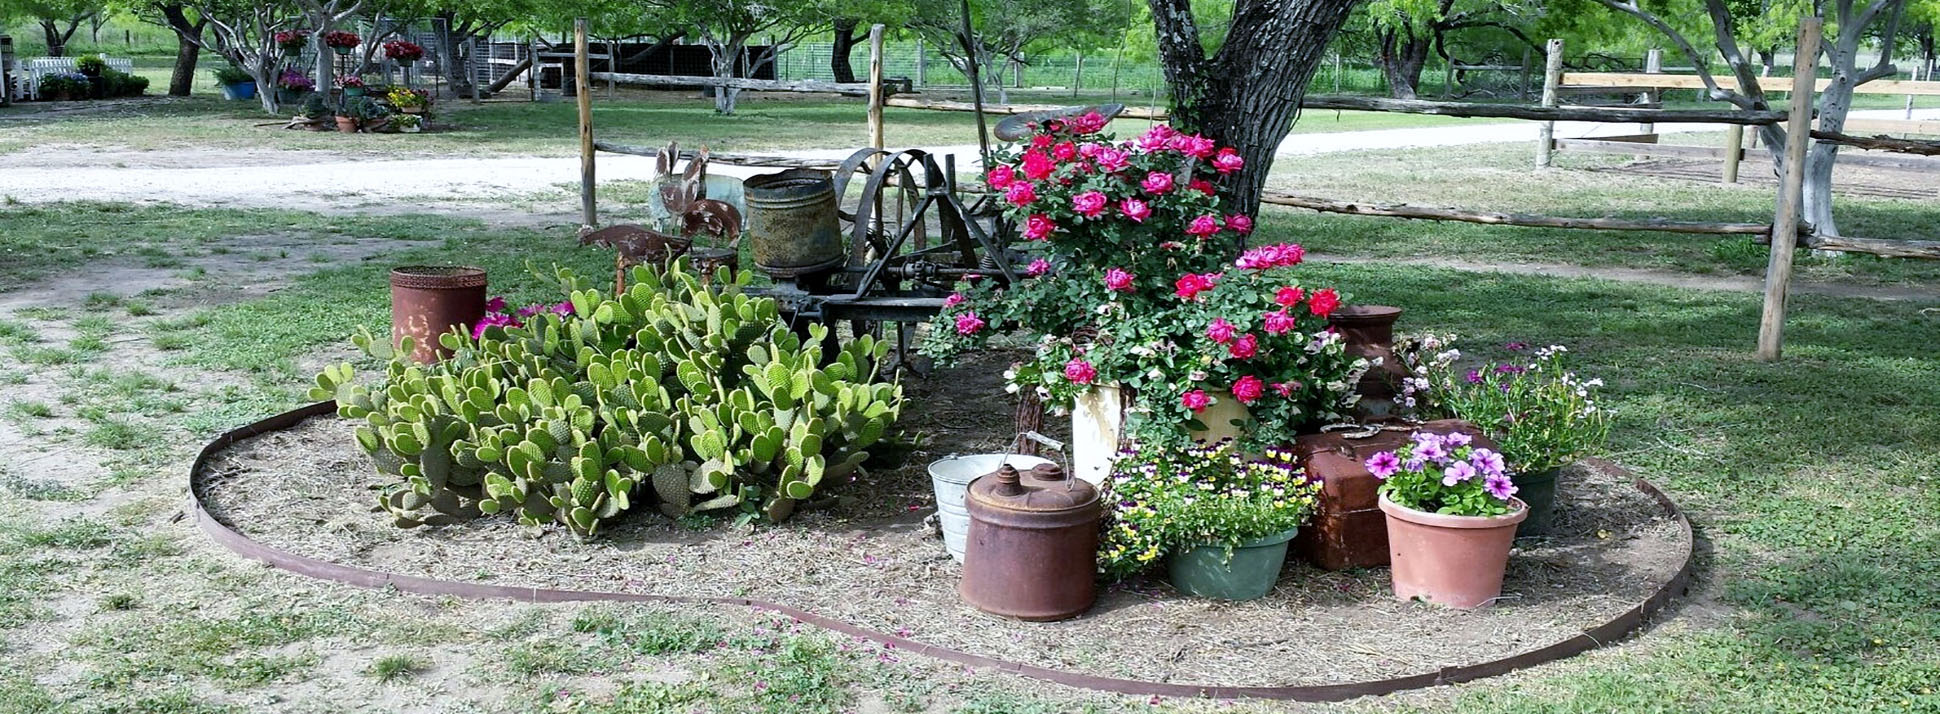 Jamie's Ranch offers a variety of activities in a beautiful ranch setting.